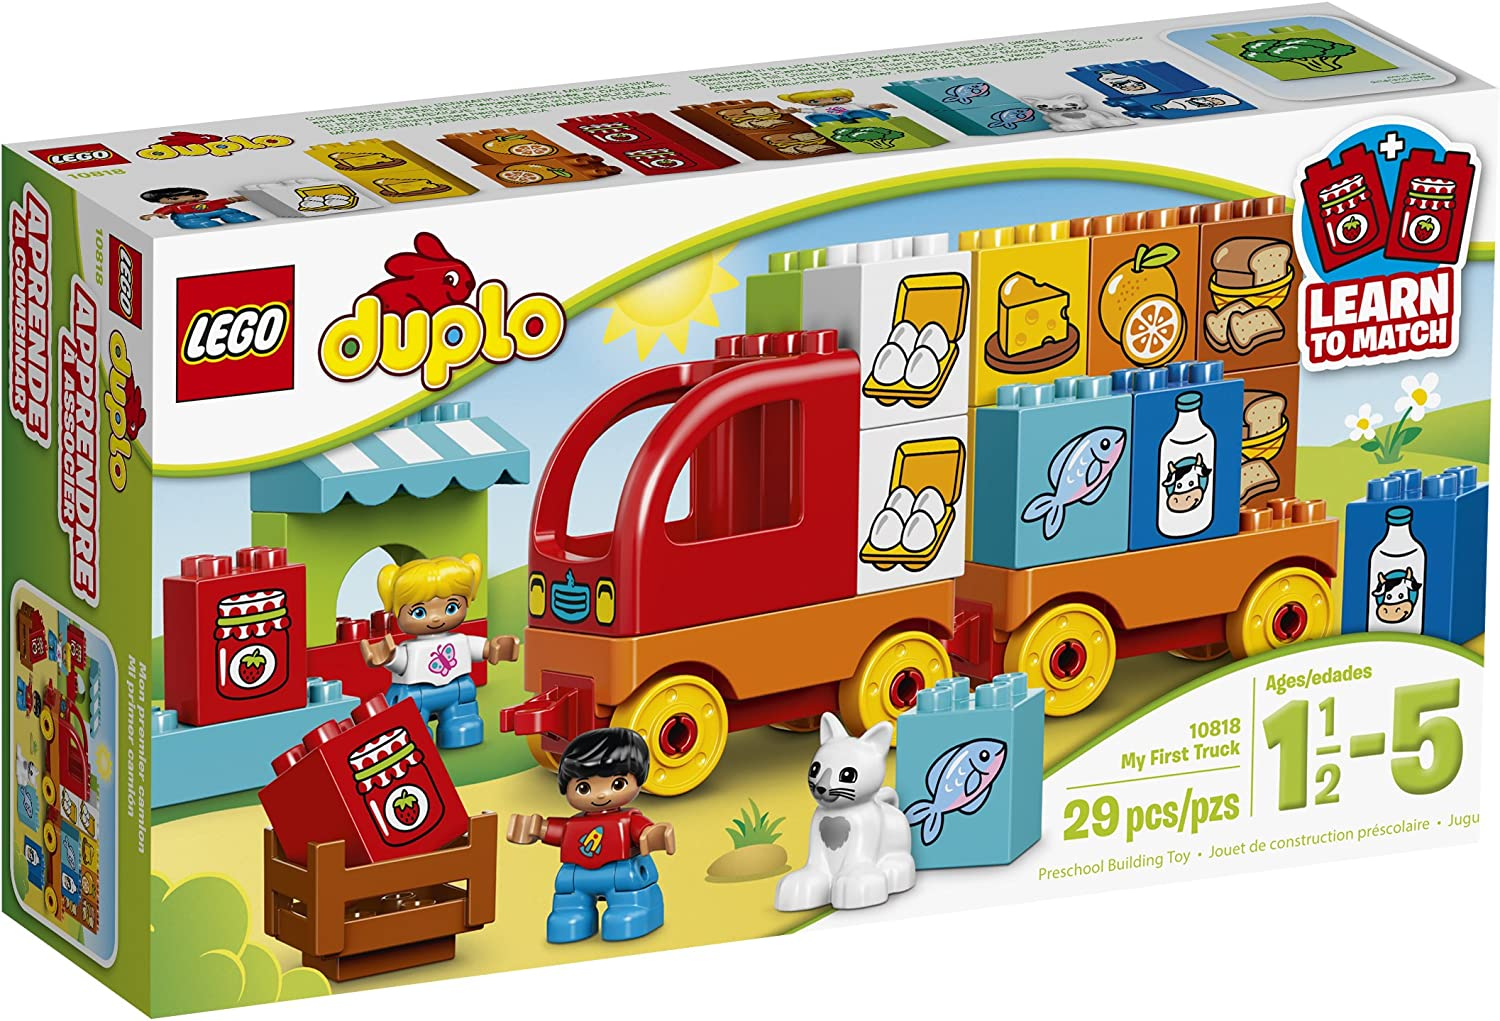 LEGO DUPLO My First Truck 10818 Learning Toy, Large Building Blocks